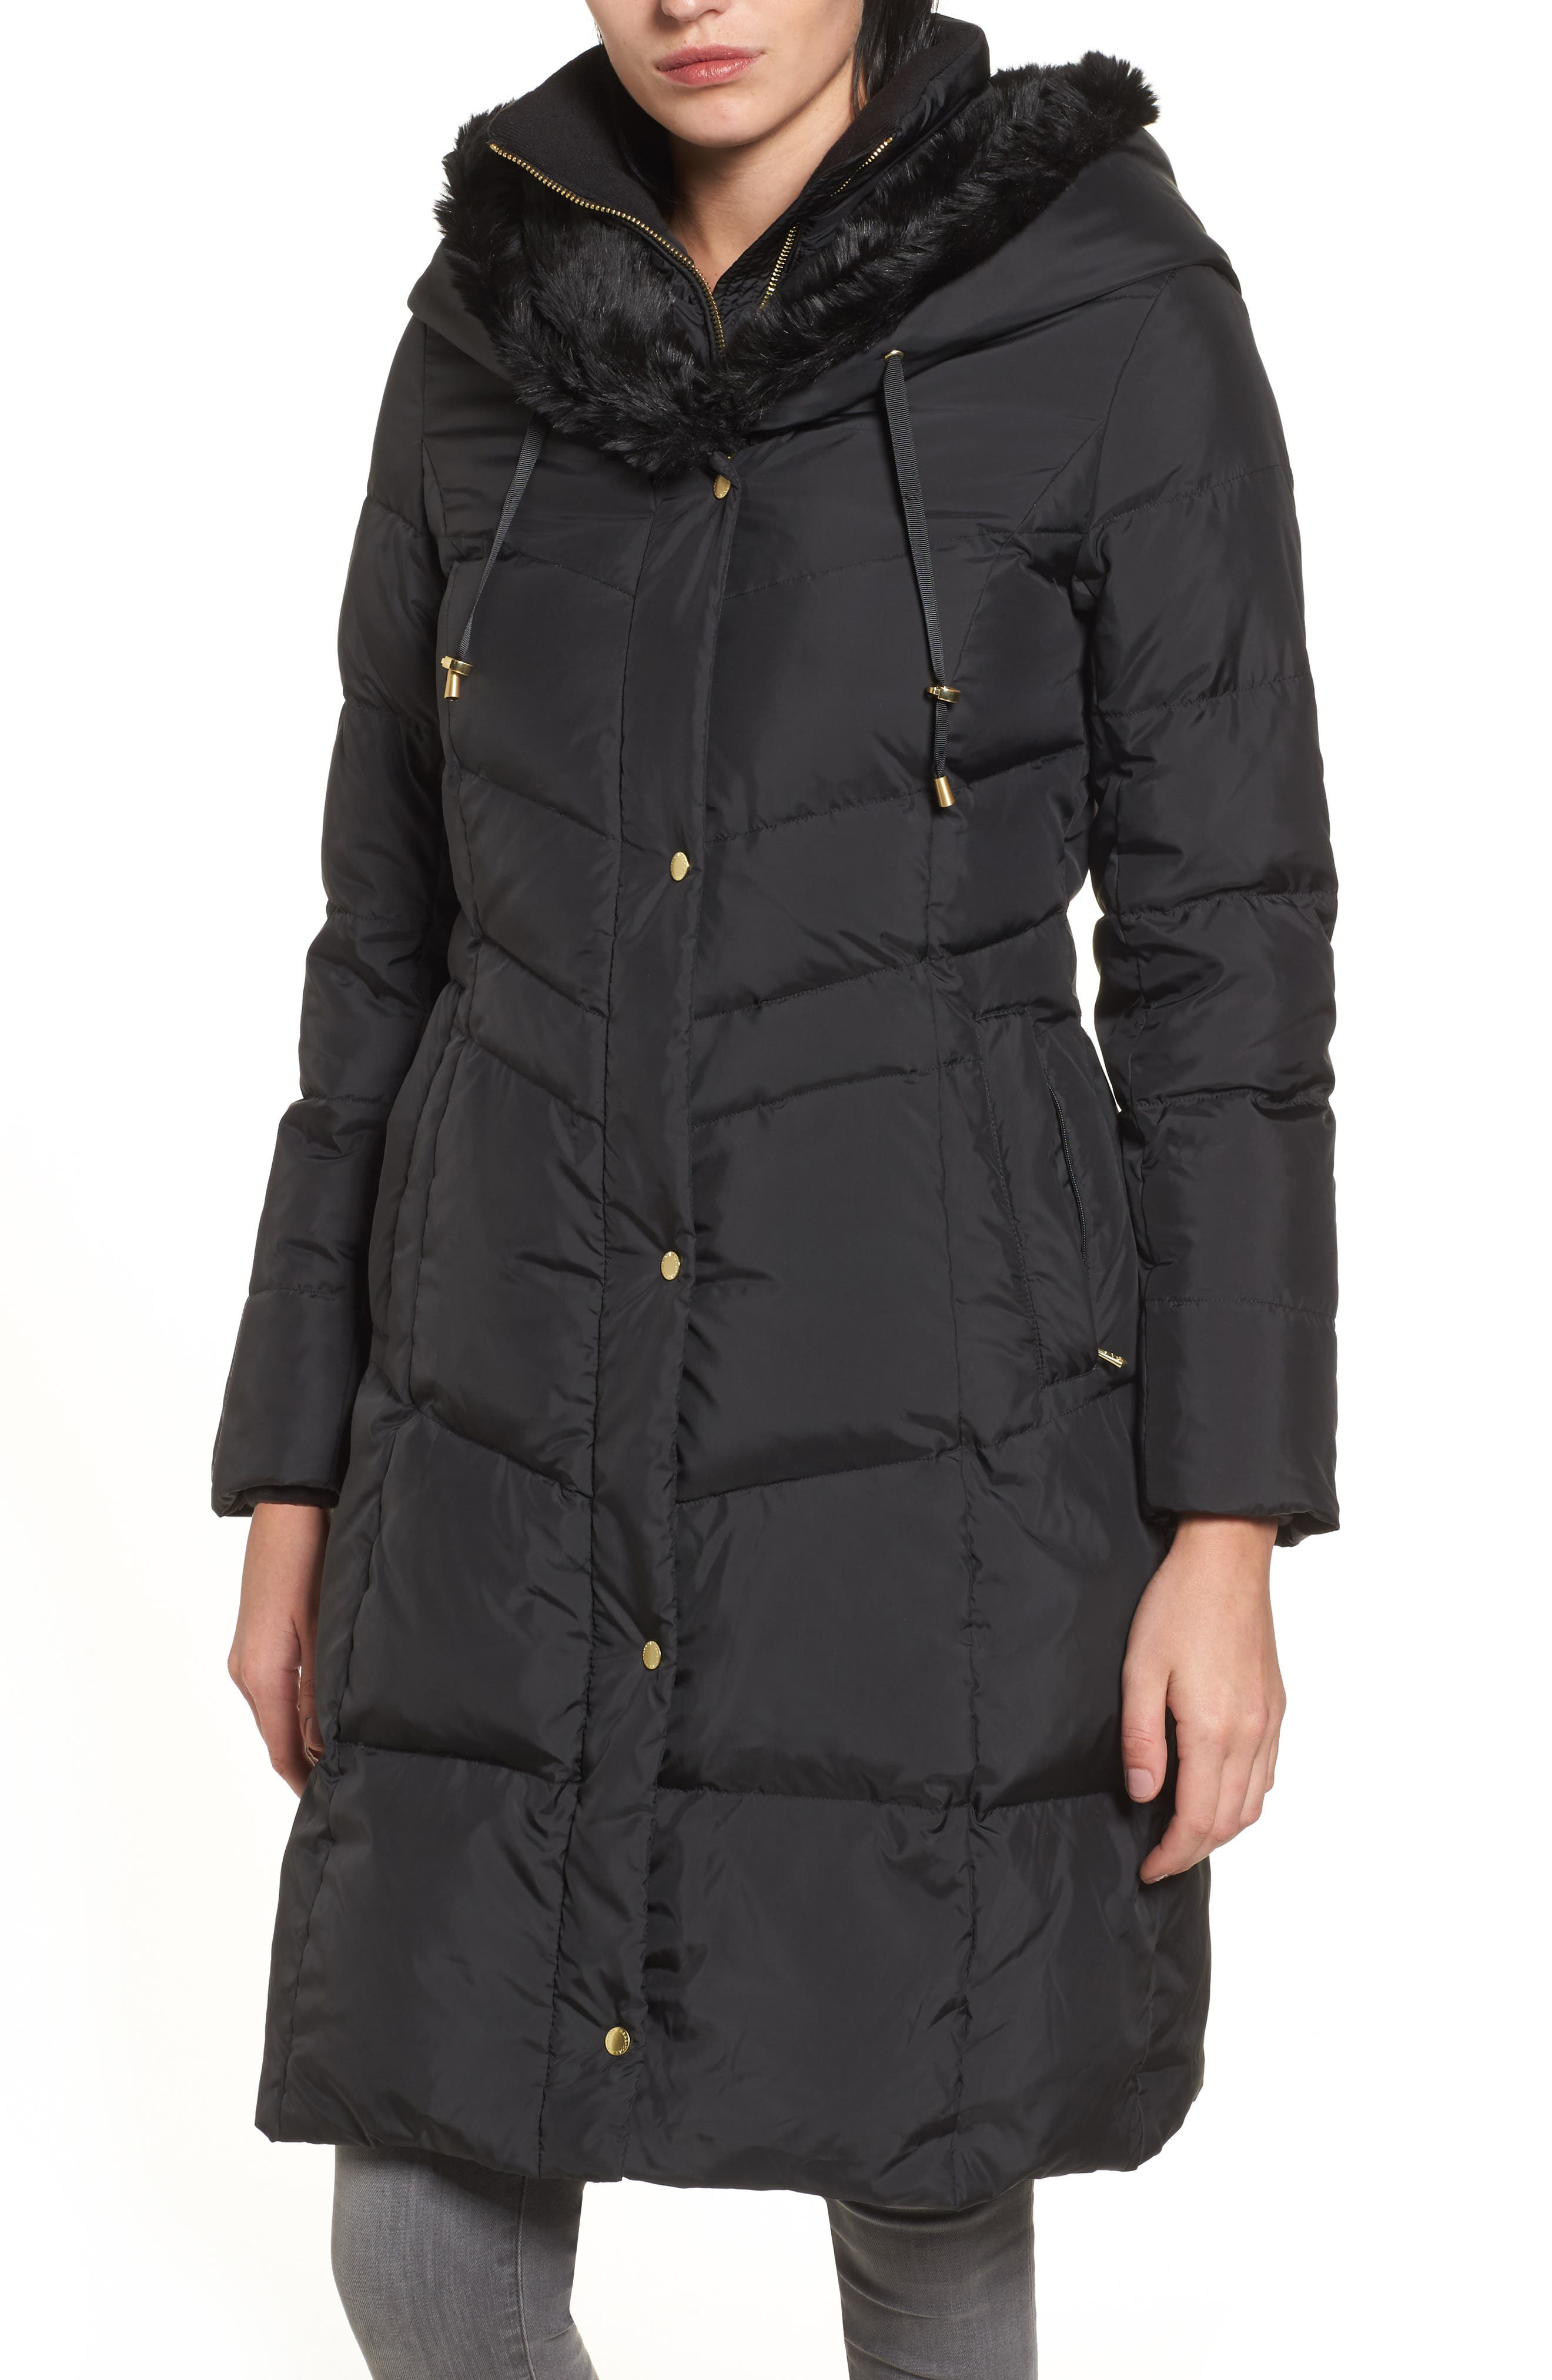 3/4 Down Coat with Faux Fur Hood,                         Main,                         color, Black